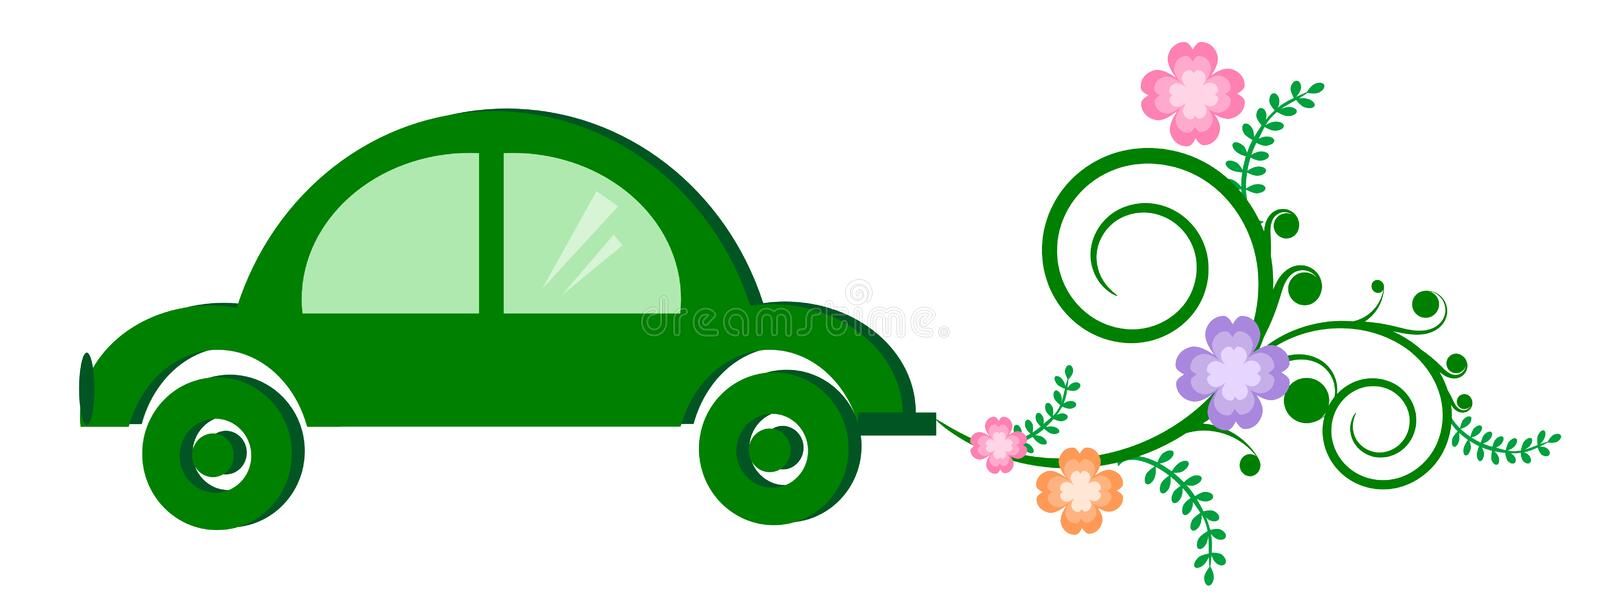 Green Eco Car stock illustration